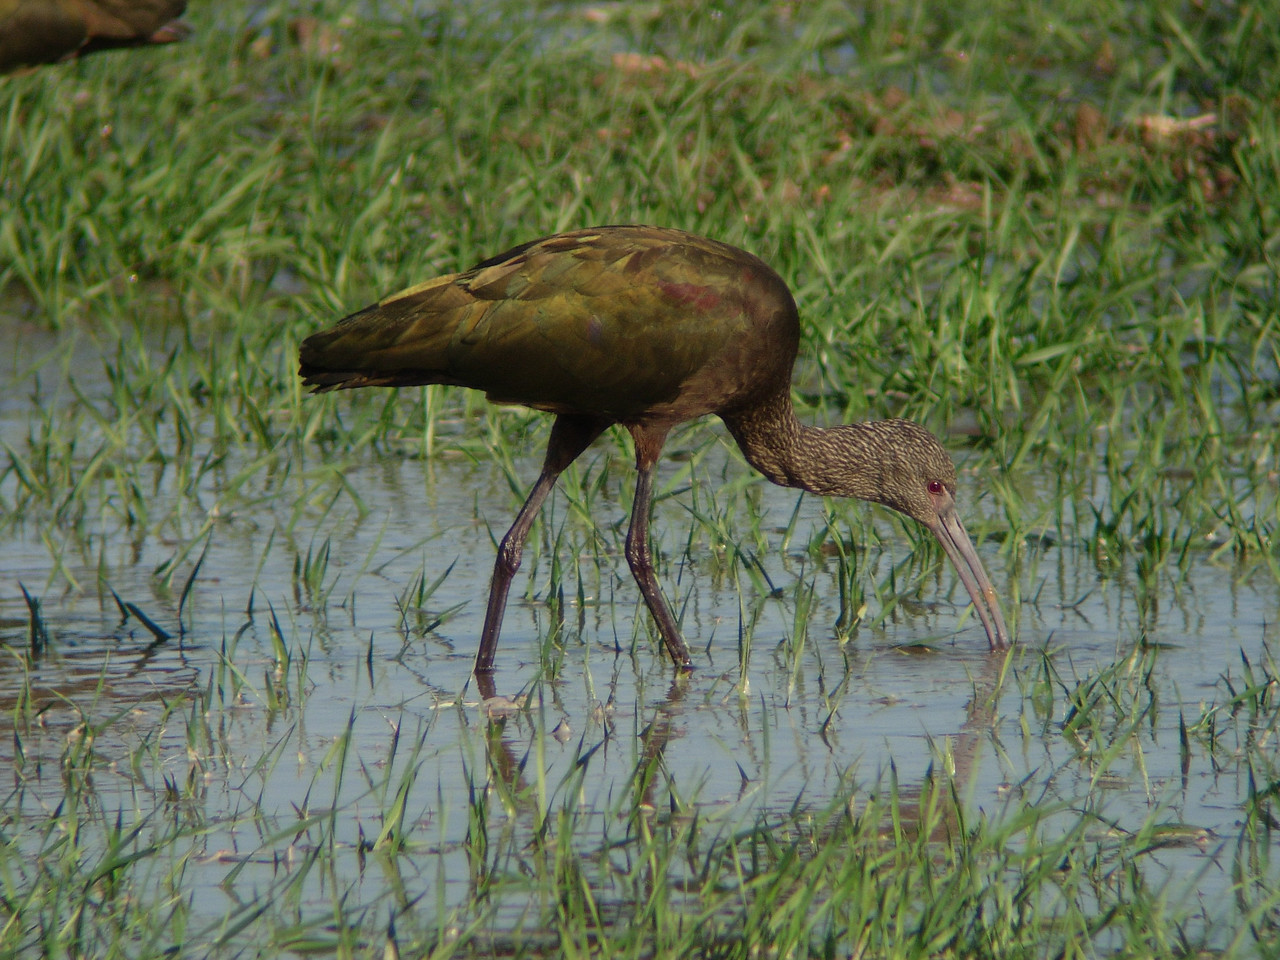 White-faced Ibis, Winter, So. California. Note the lack of a white face.